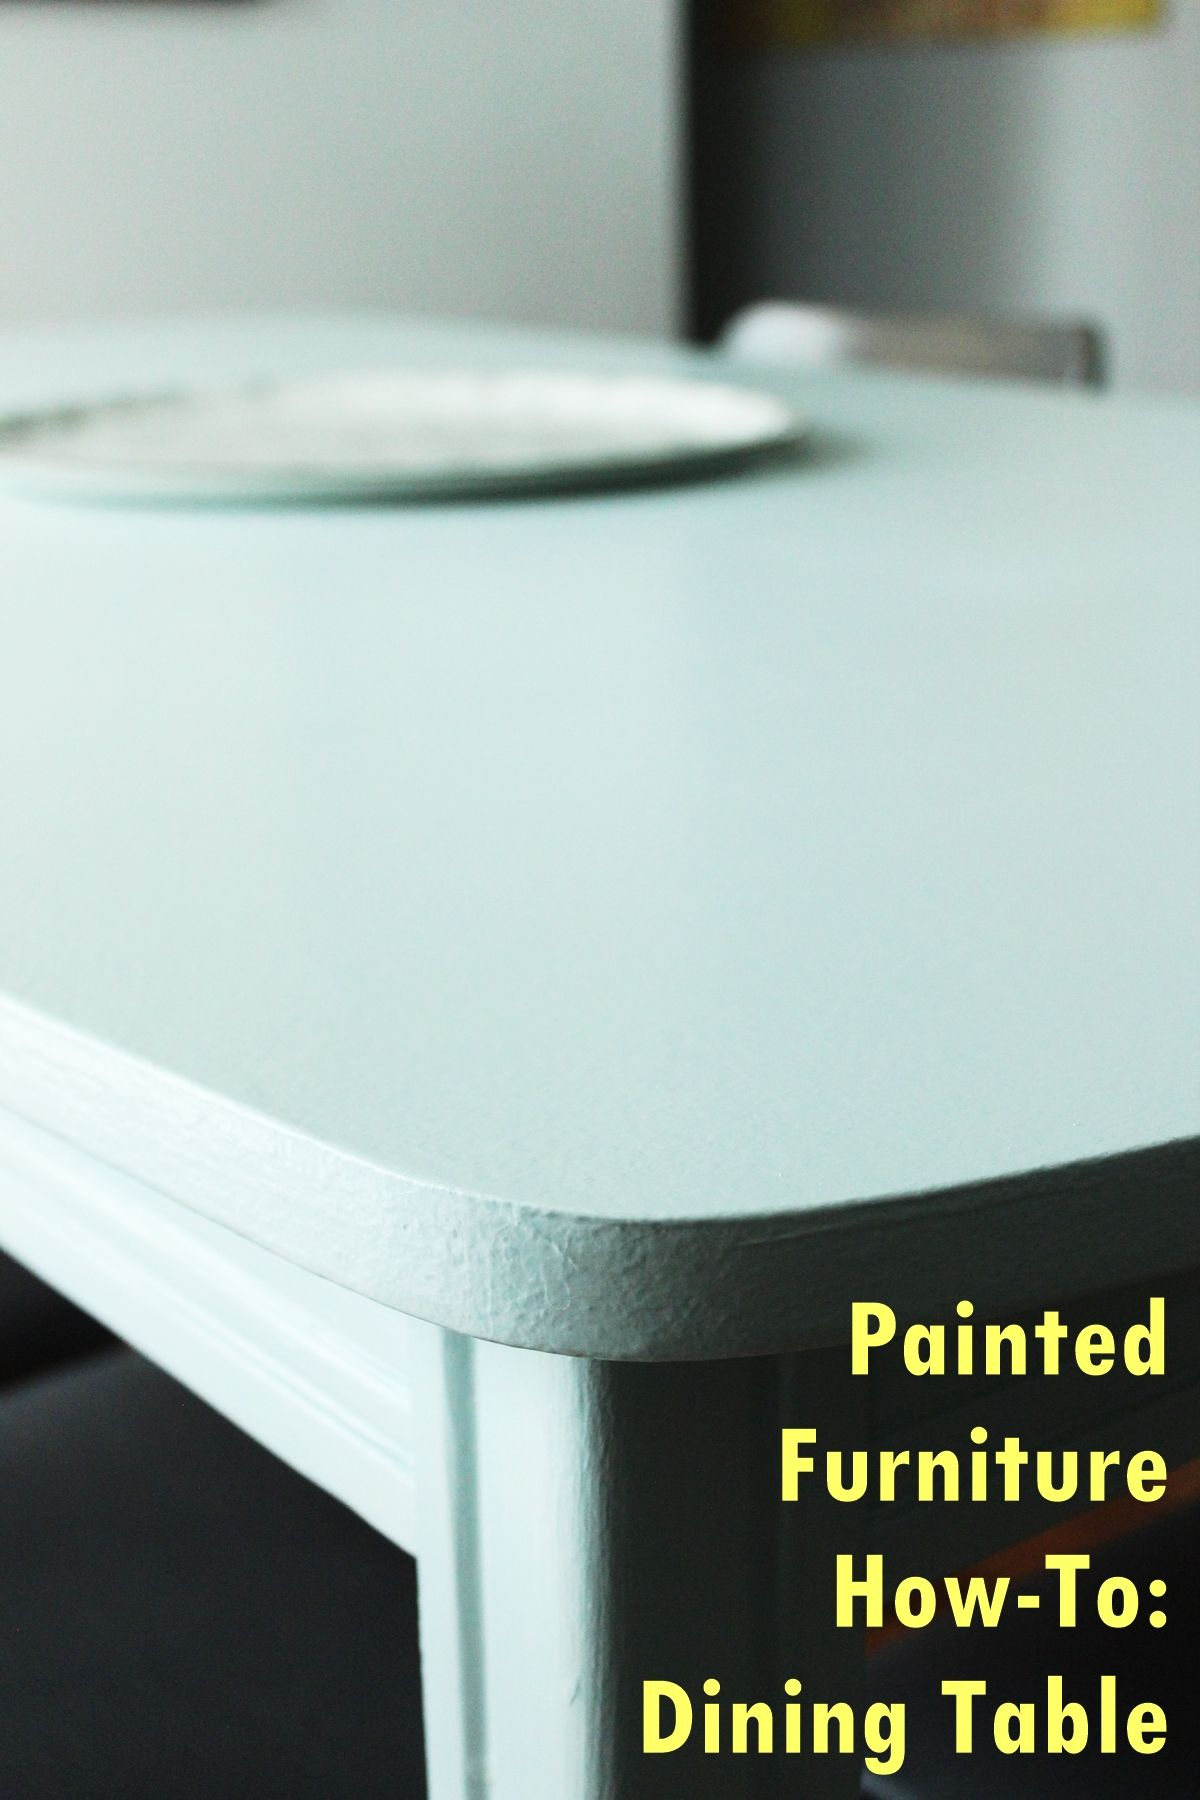 Painted Furniture: How to Prep, Paint and Seal a Dining Table